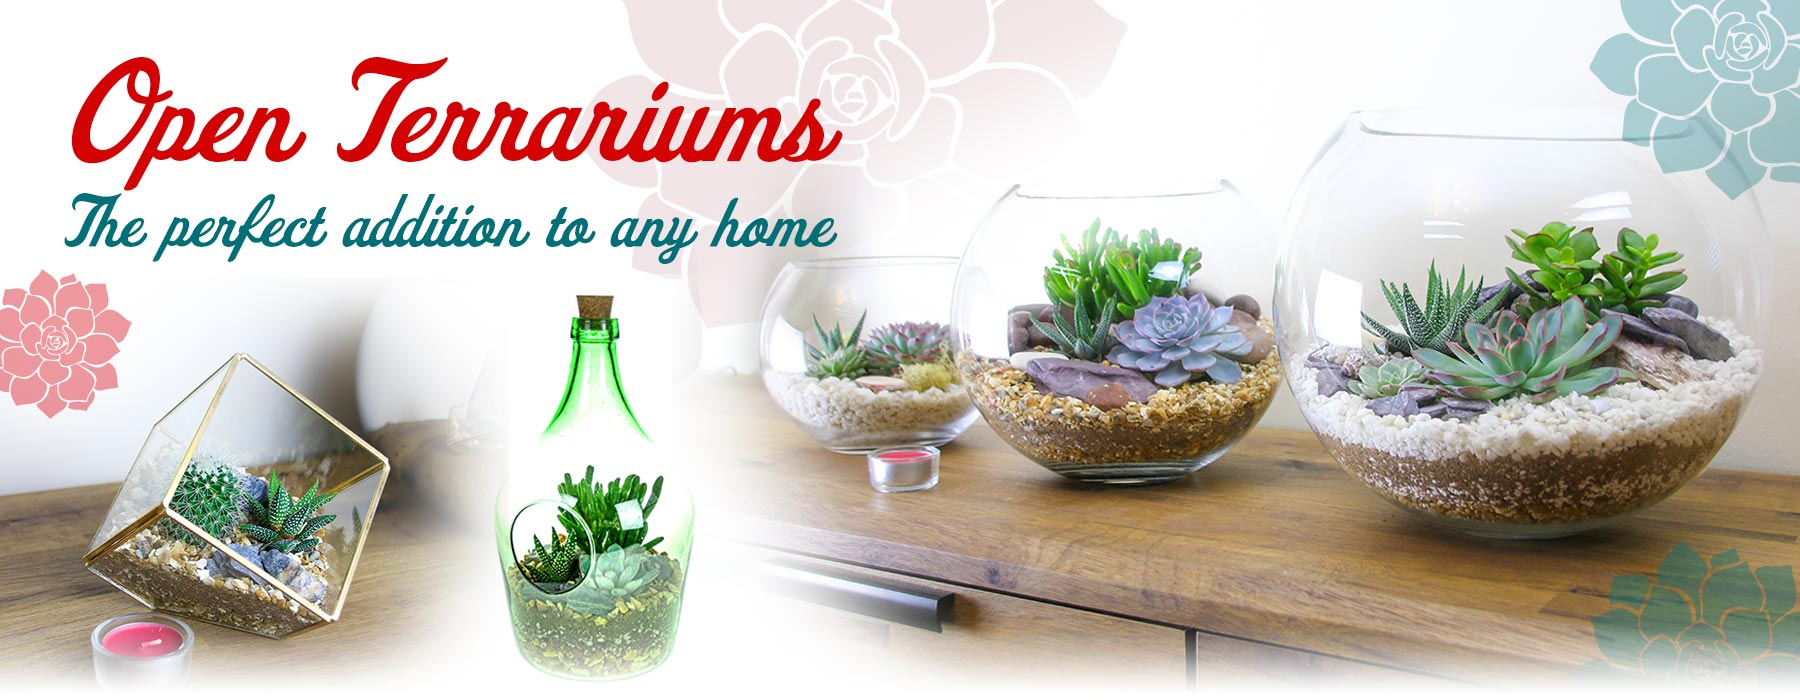 Buy Terrarium Kits In The Uk Featuring Living Succulent Plants